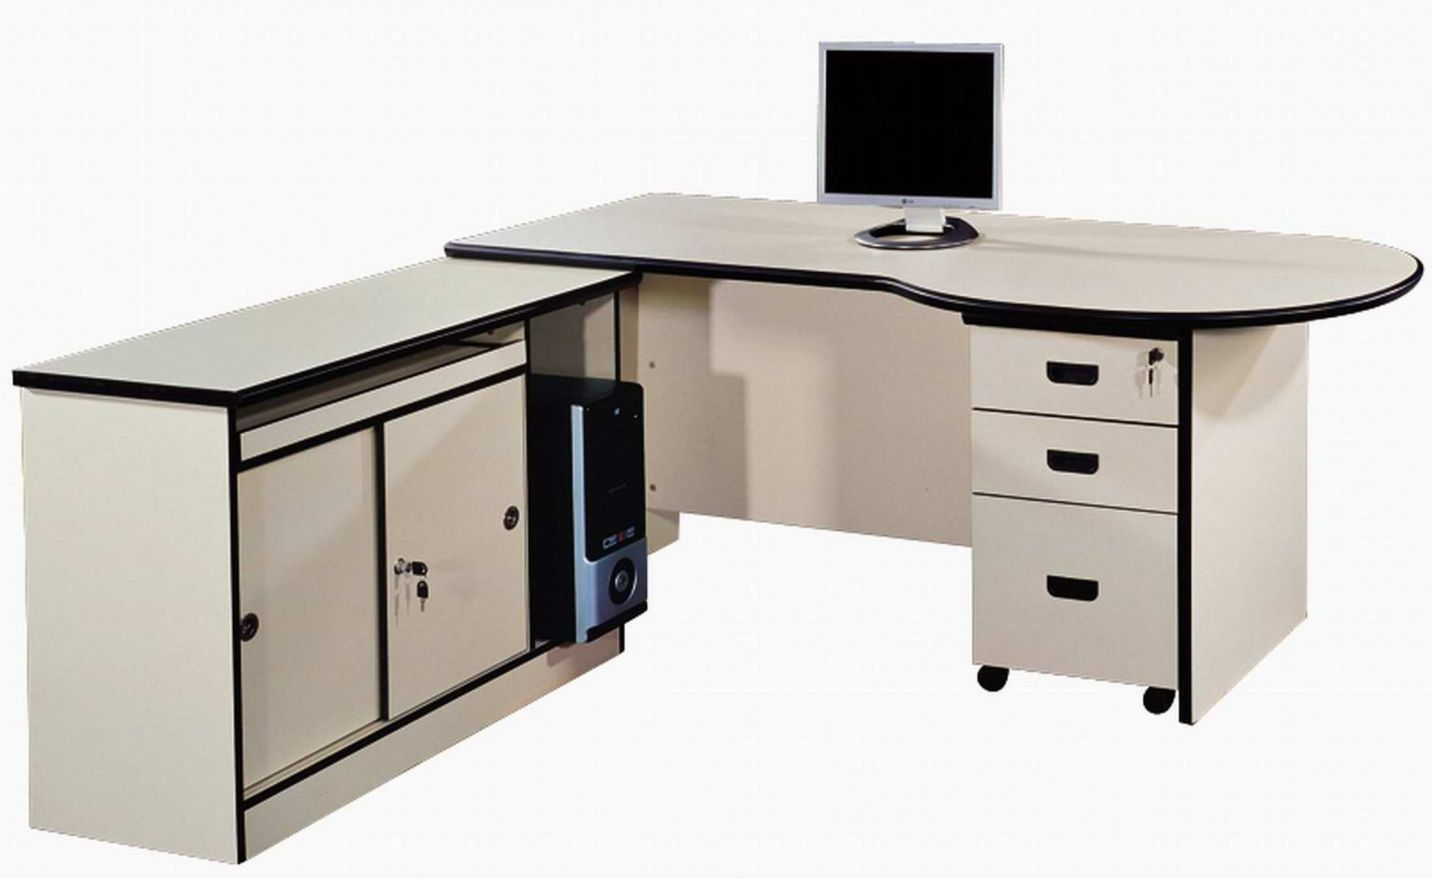 office desks cheap. Office Desk Cheap Price - Home Furniture Collections Check More At Http:// Desks G